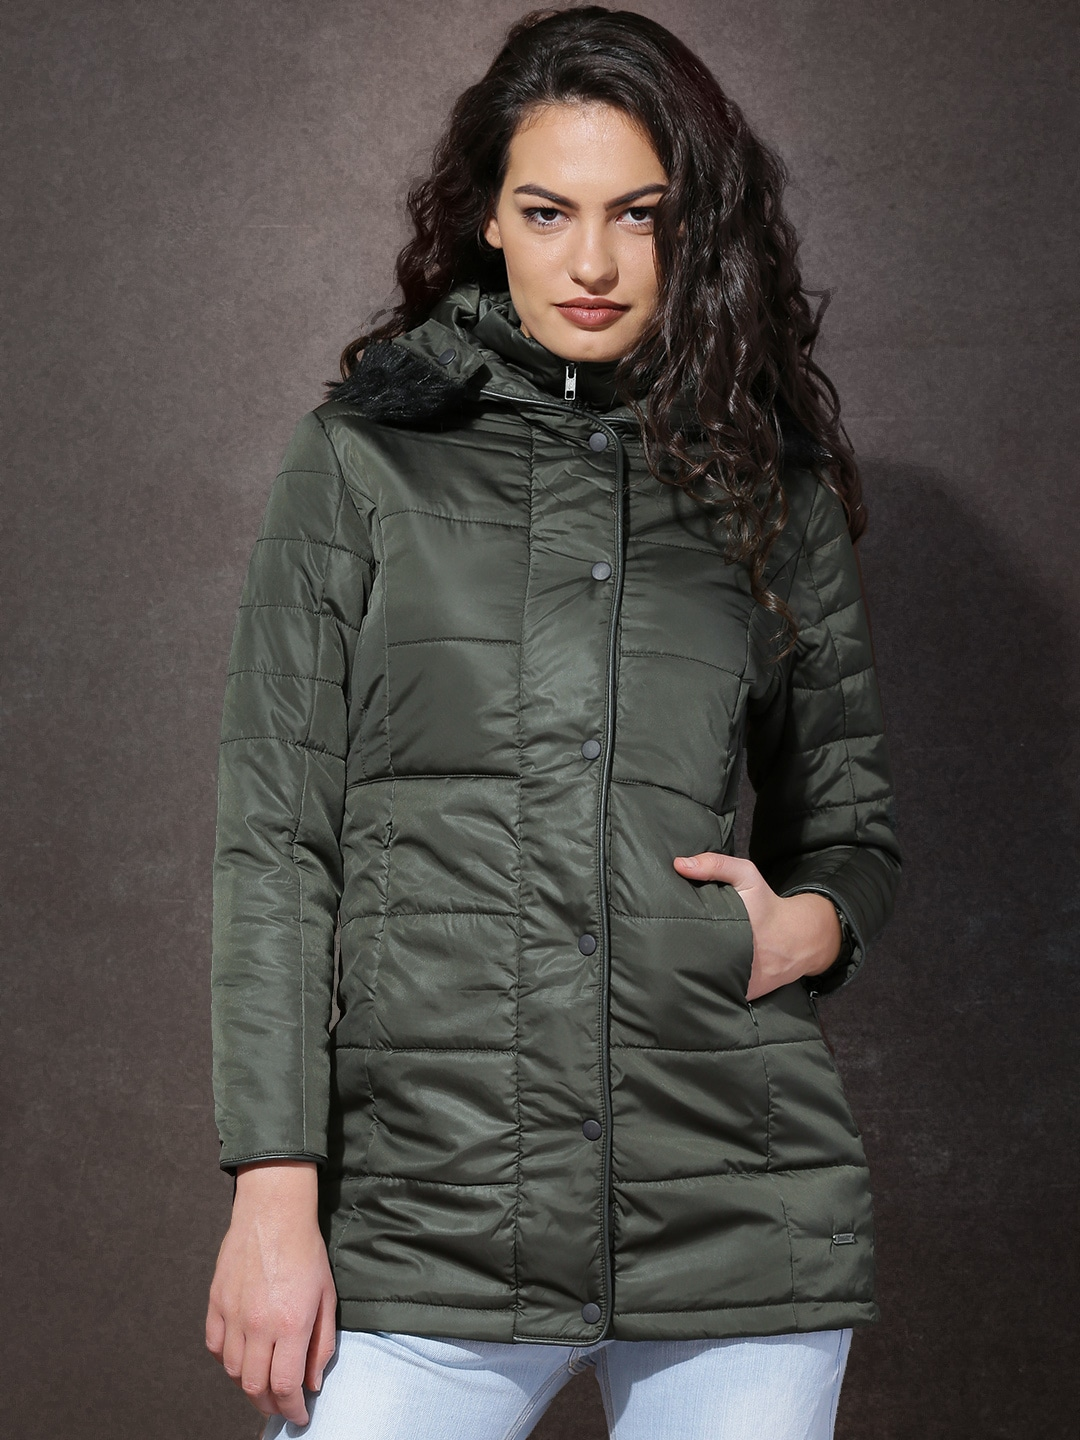 8e35438f06d Roadster Olive Green Hooded Tailored Jacket With Detachable Faux Fur Trim